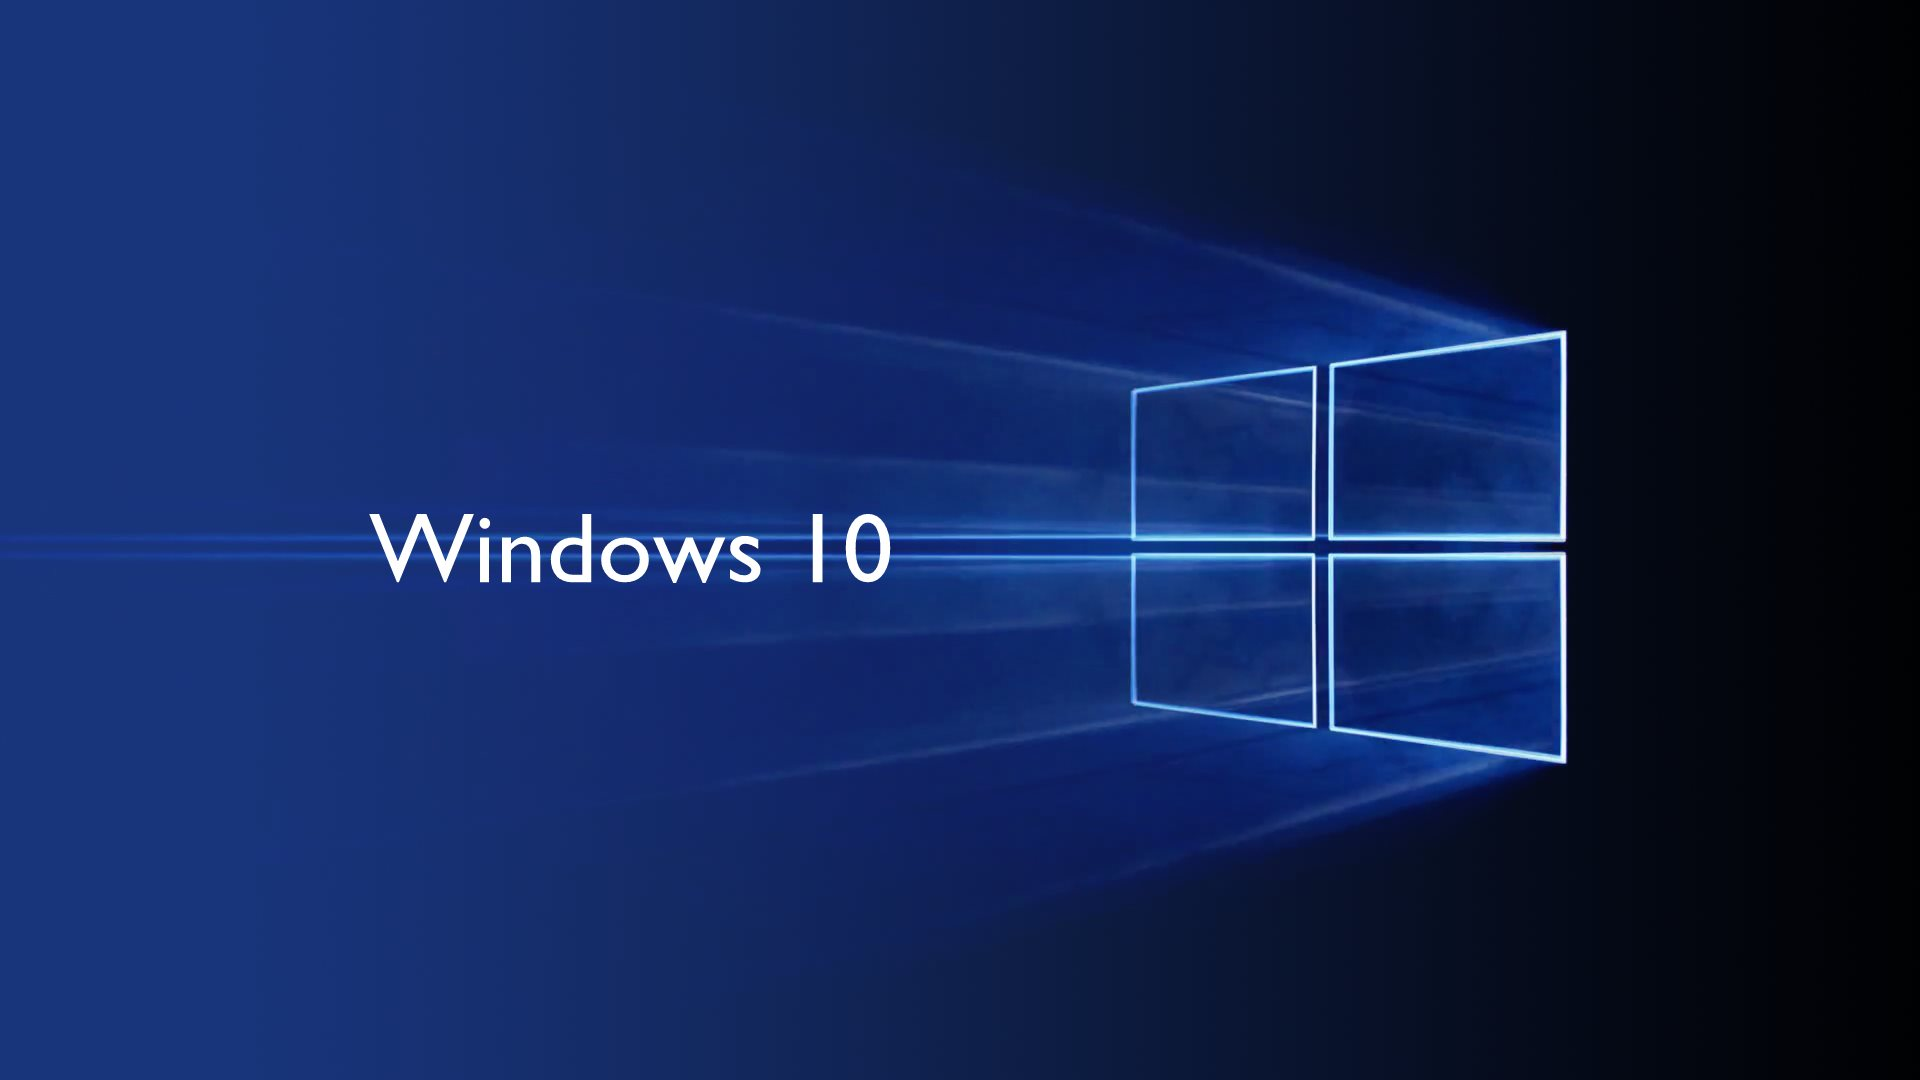 Comment réinstaller windows 8.1 ?